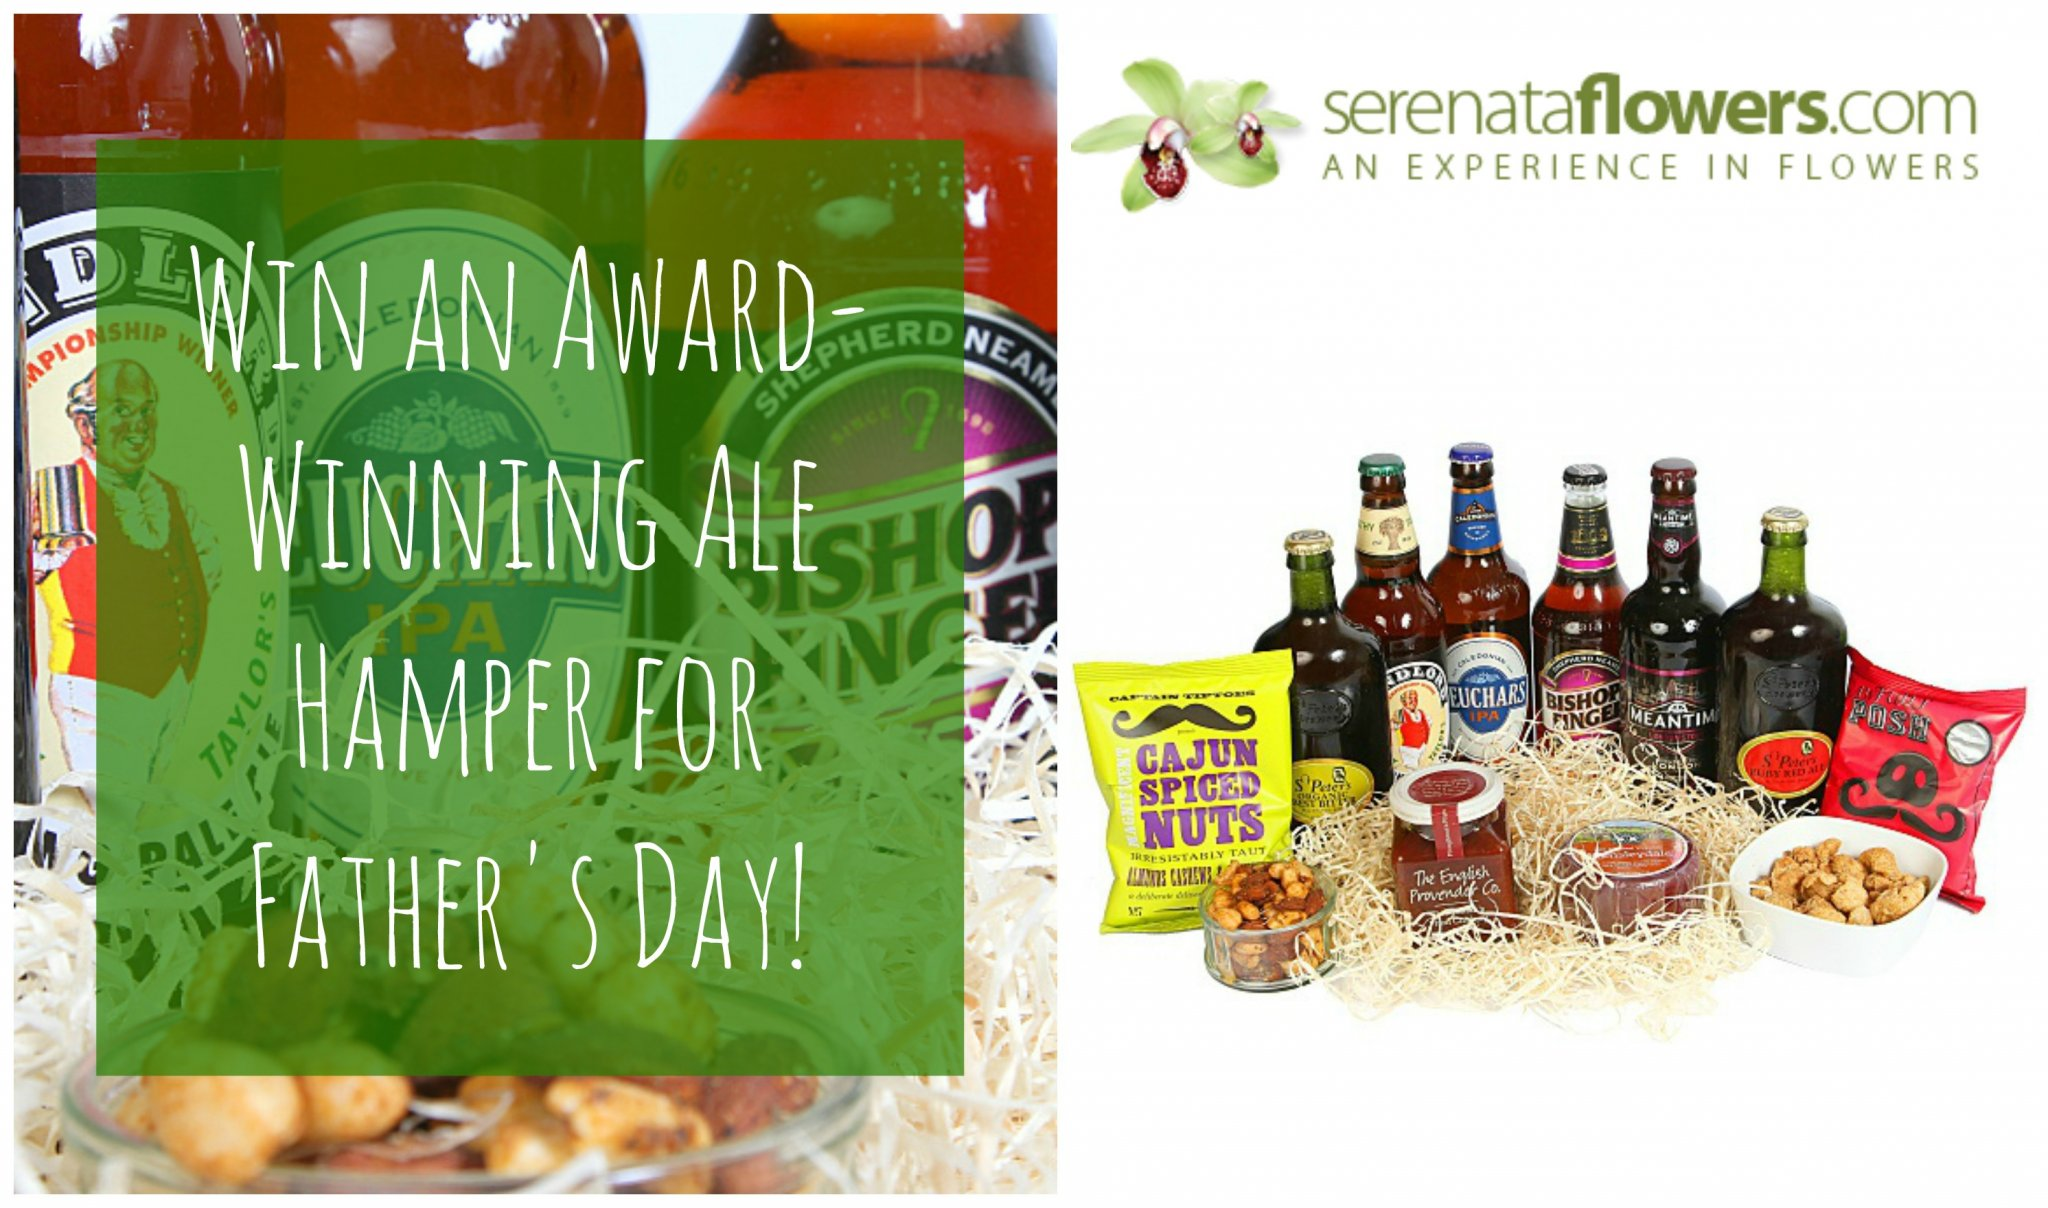 Win an Award-Winning Ale Hamper for Father's Day! www.mamamim.com